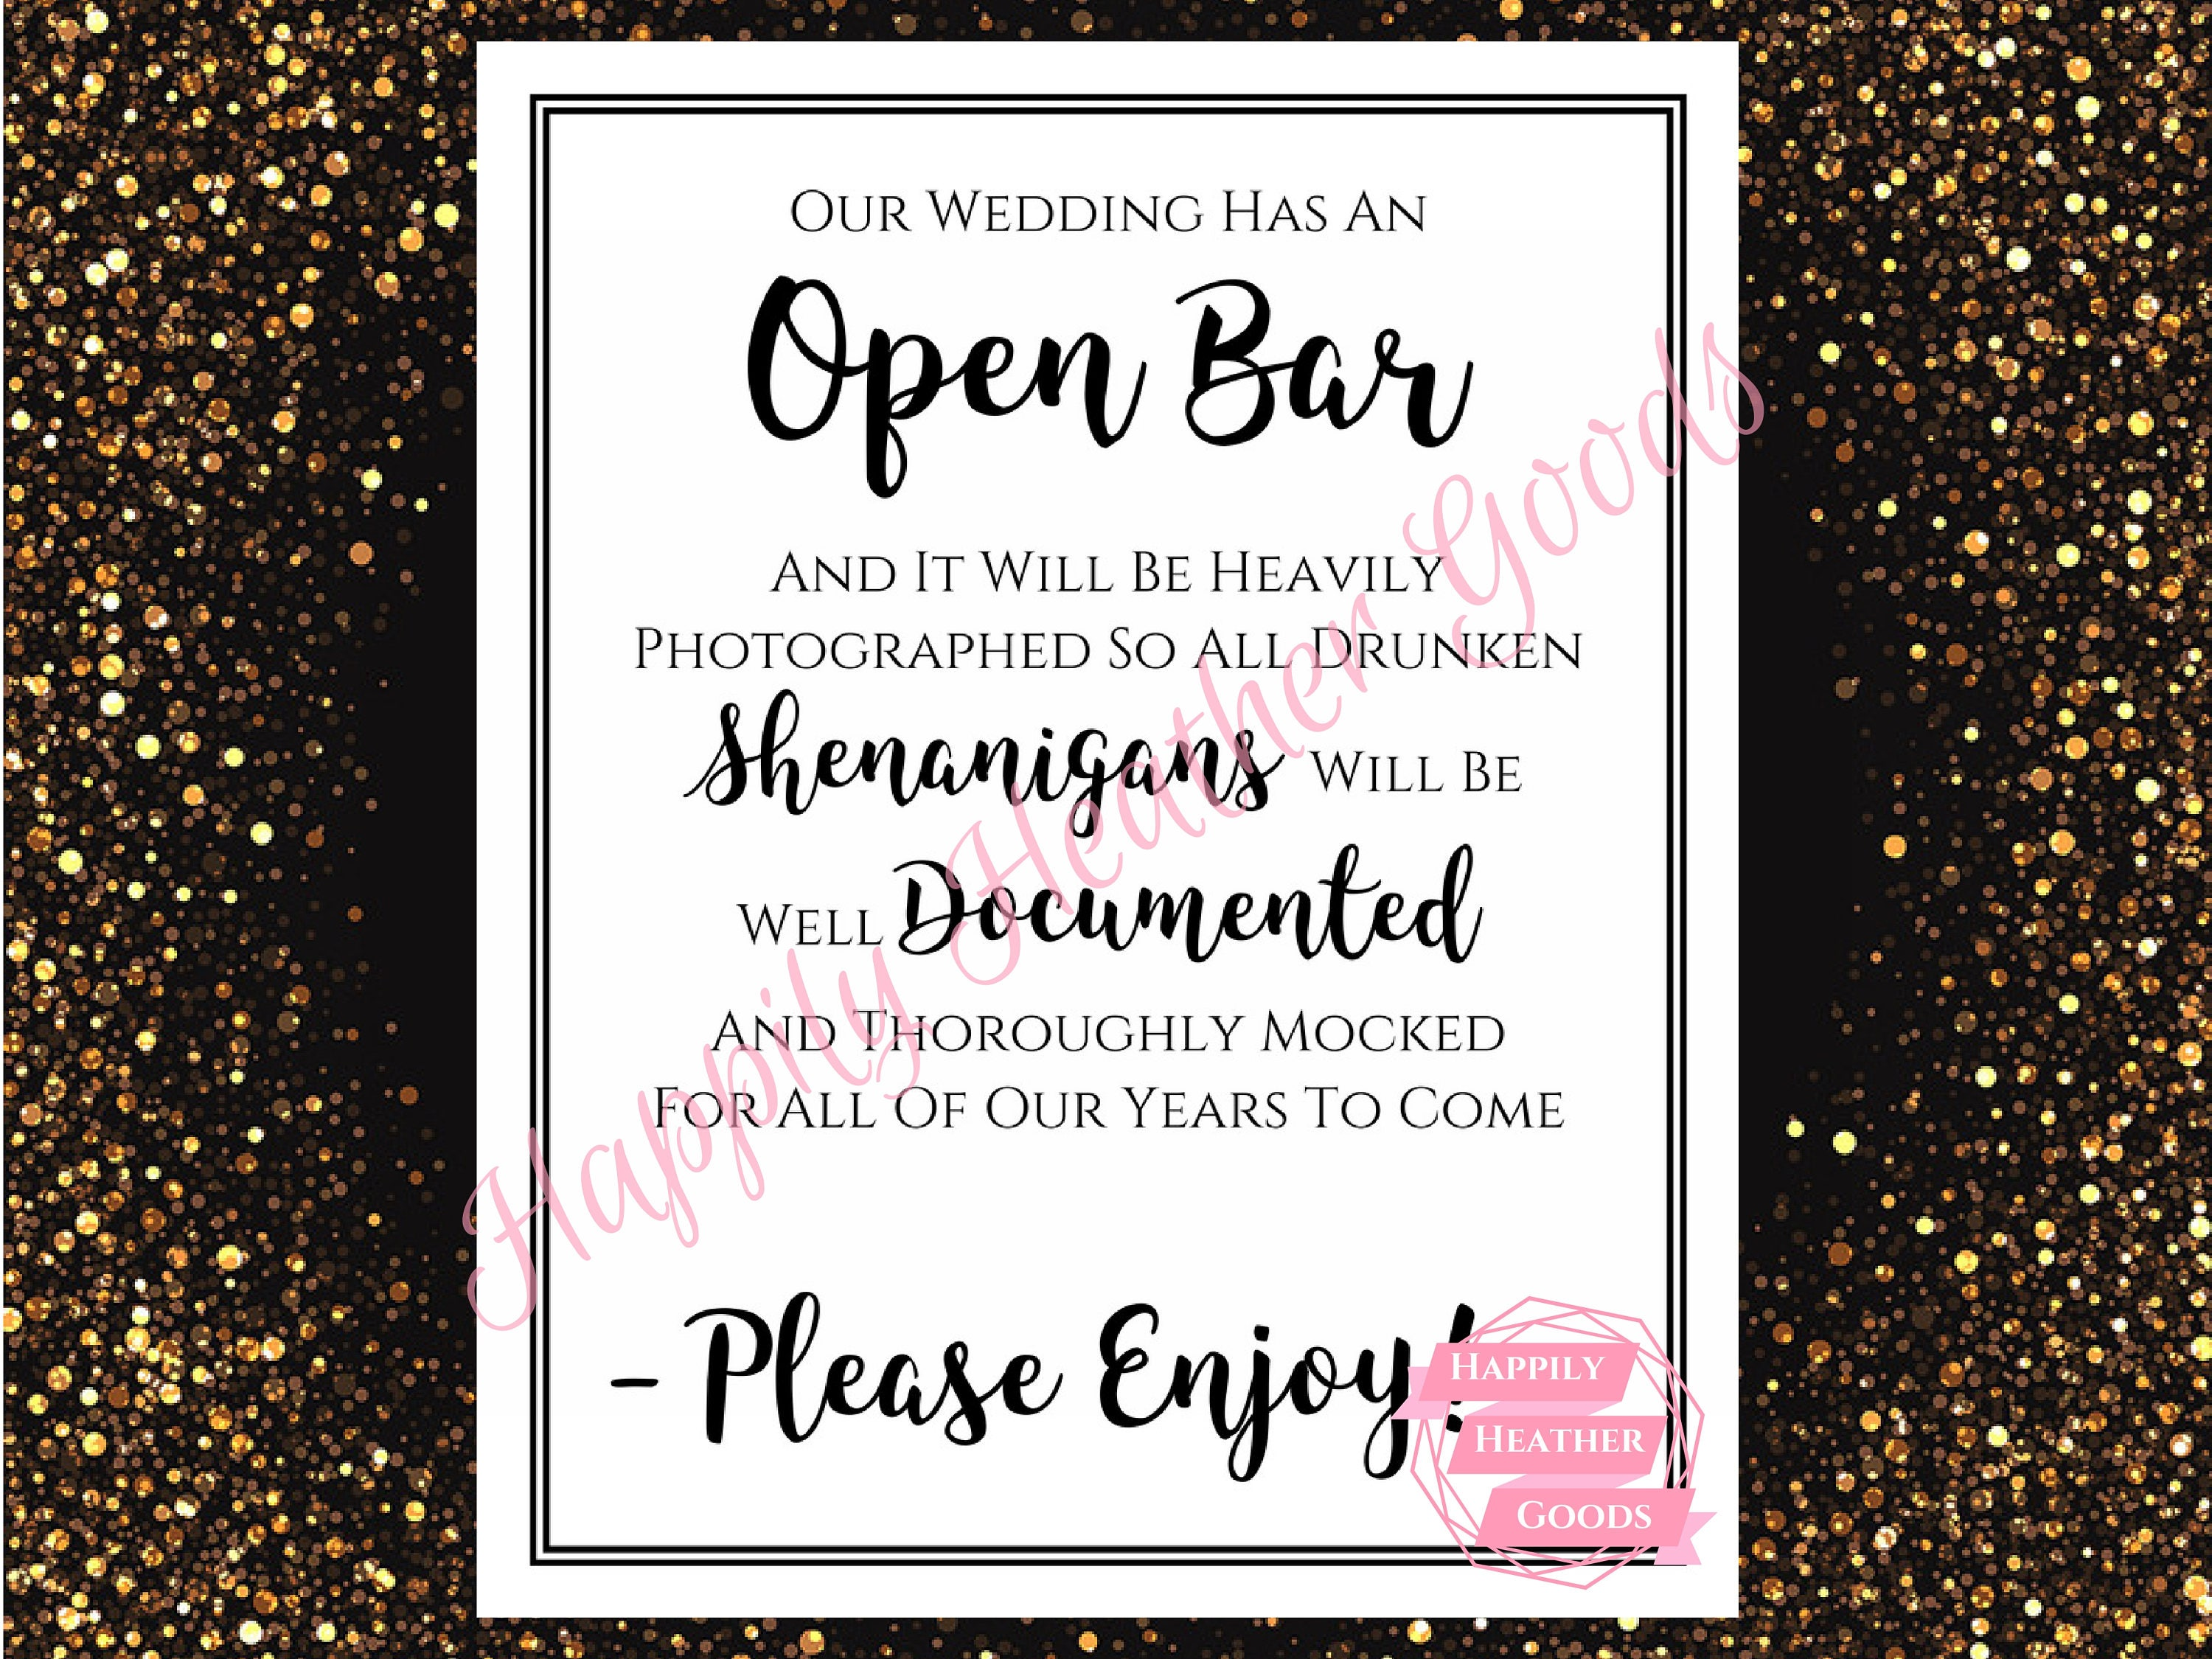 Open Bar Sign Heavily Photographed Drunken Shenanigans Wedding